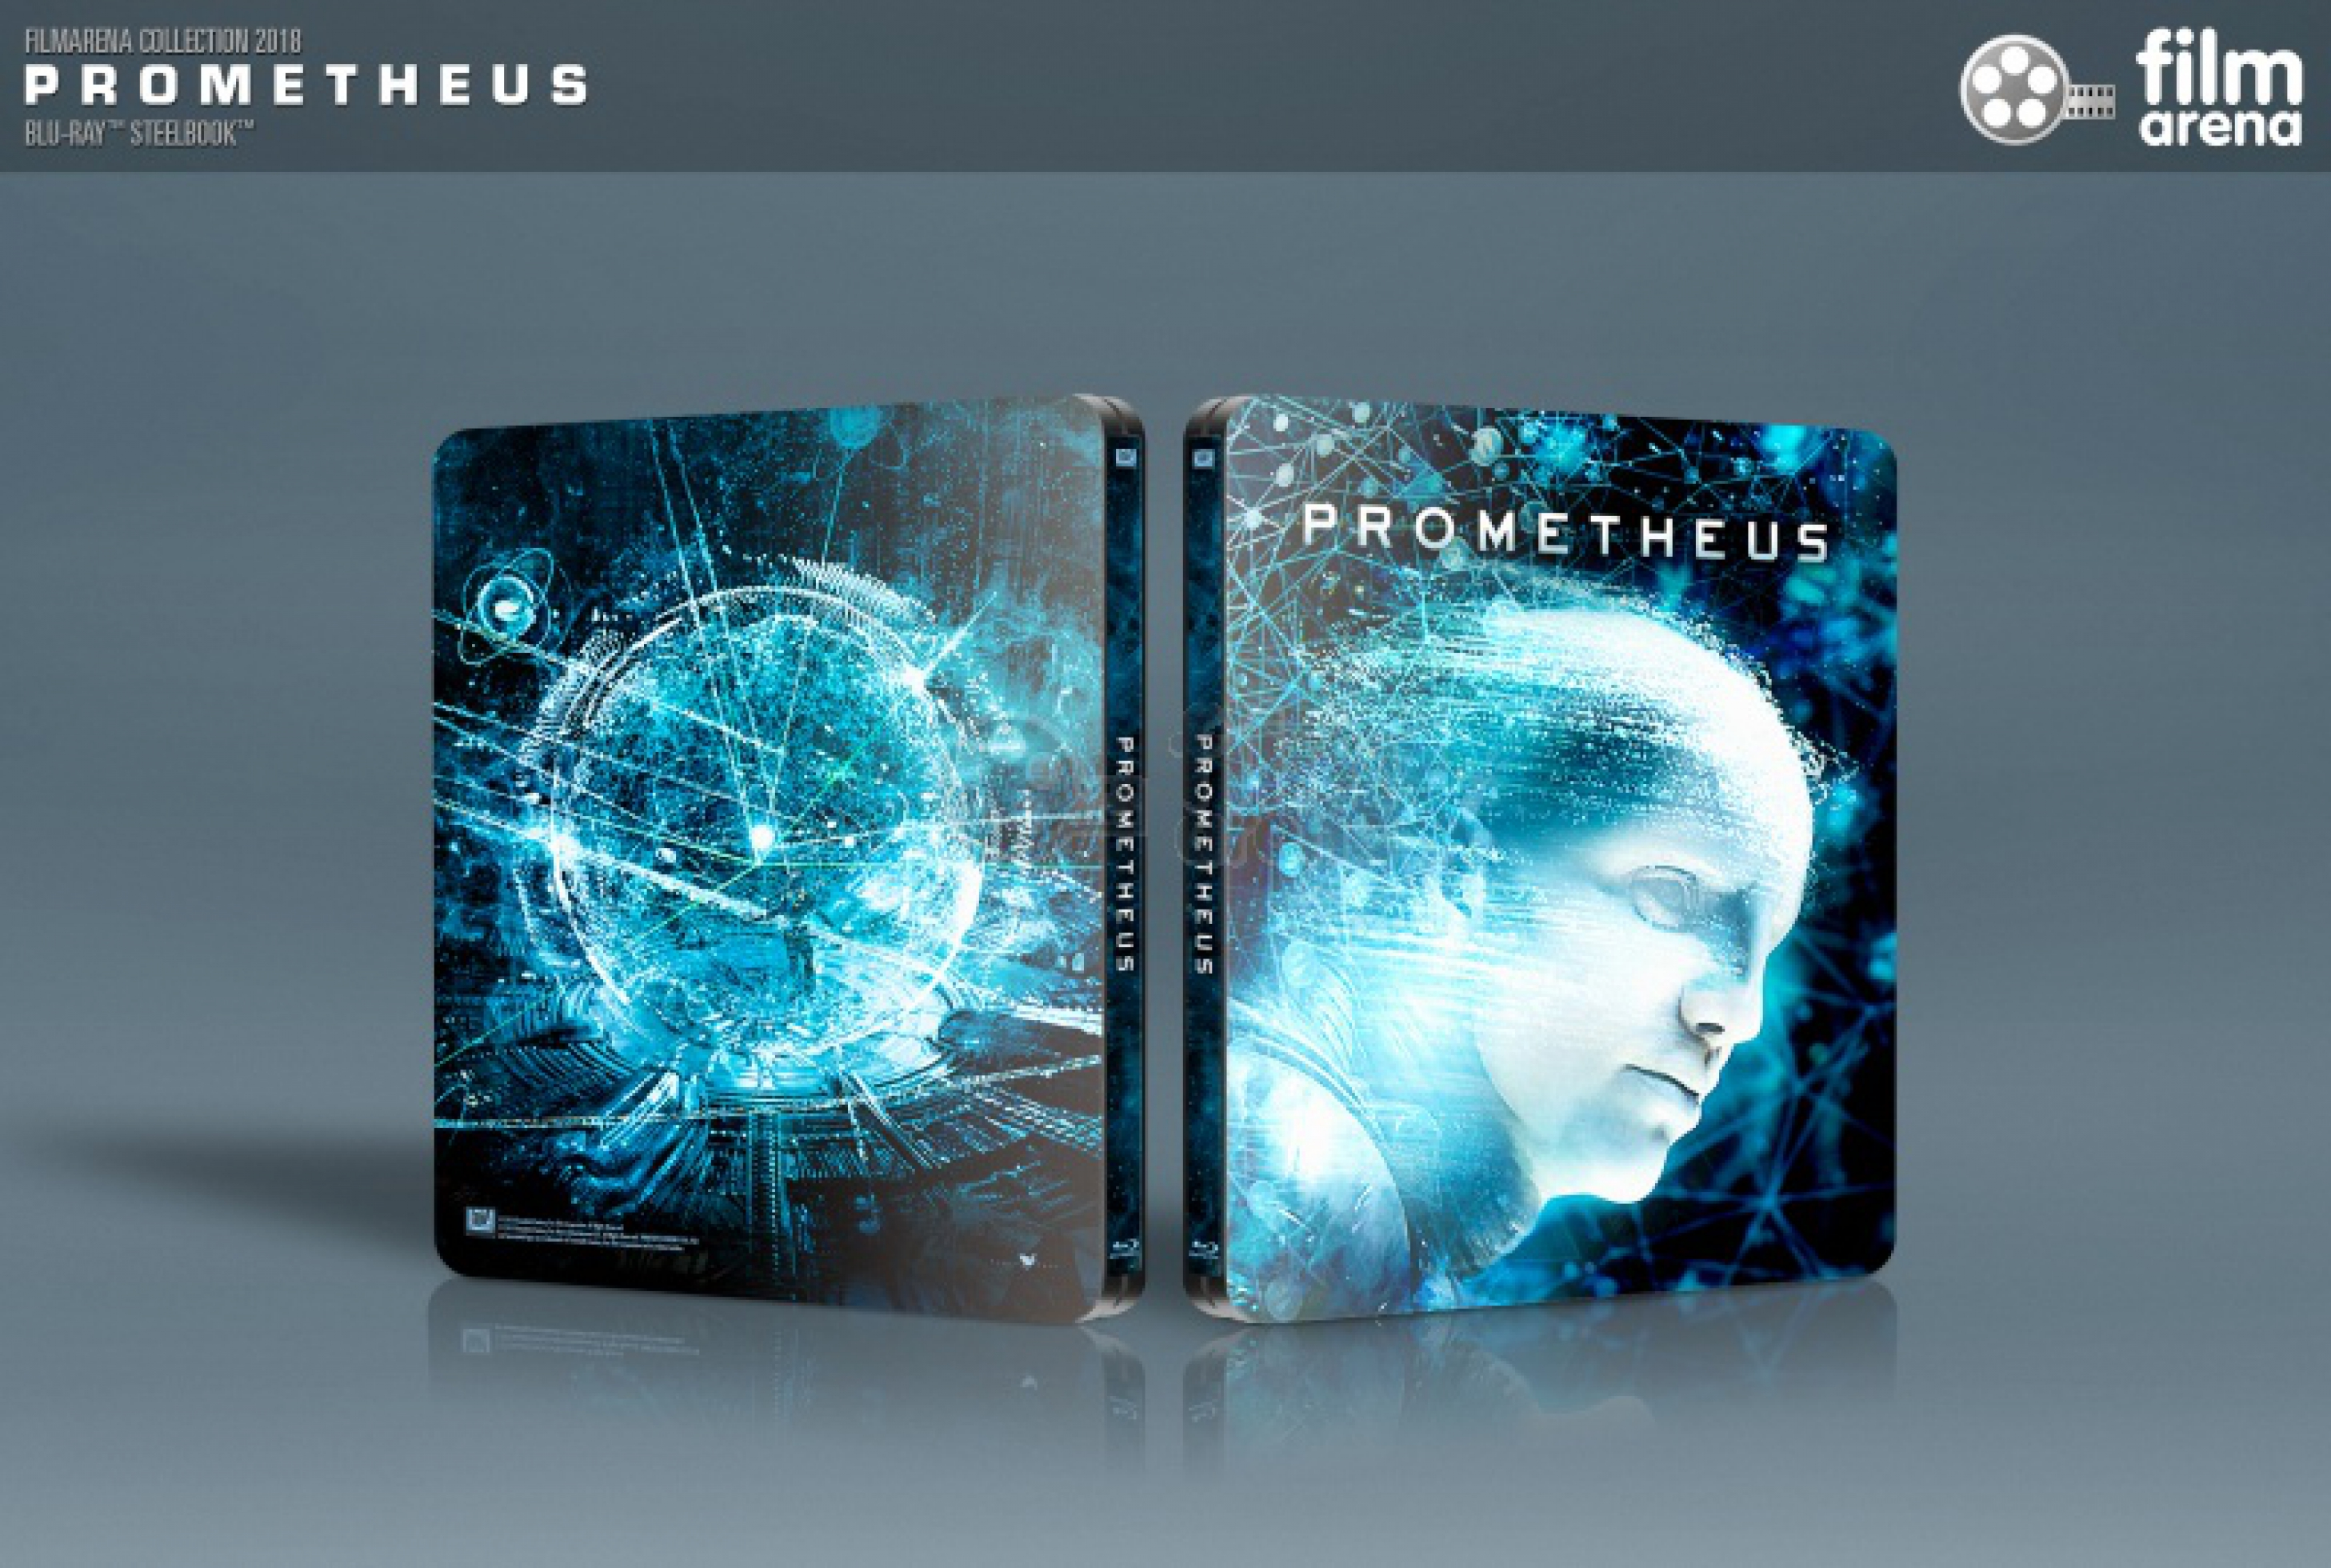 HD-Filmportal Prometheus 4K D Edition 5 FAC unnumbered